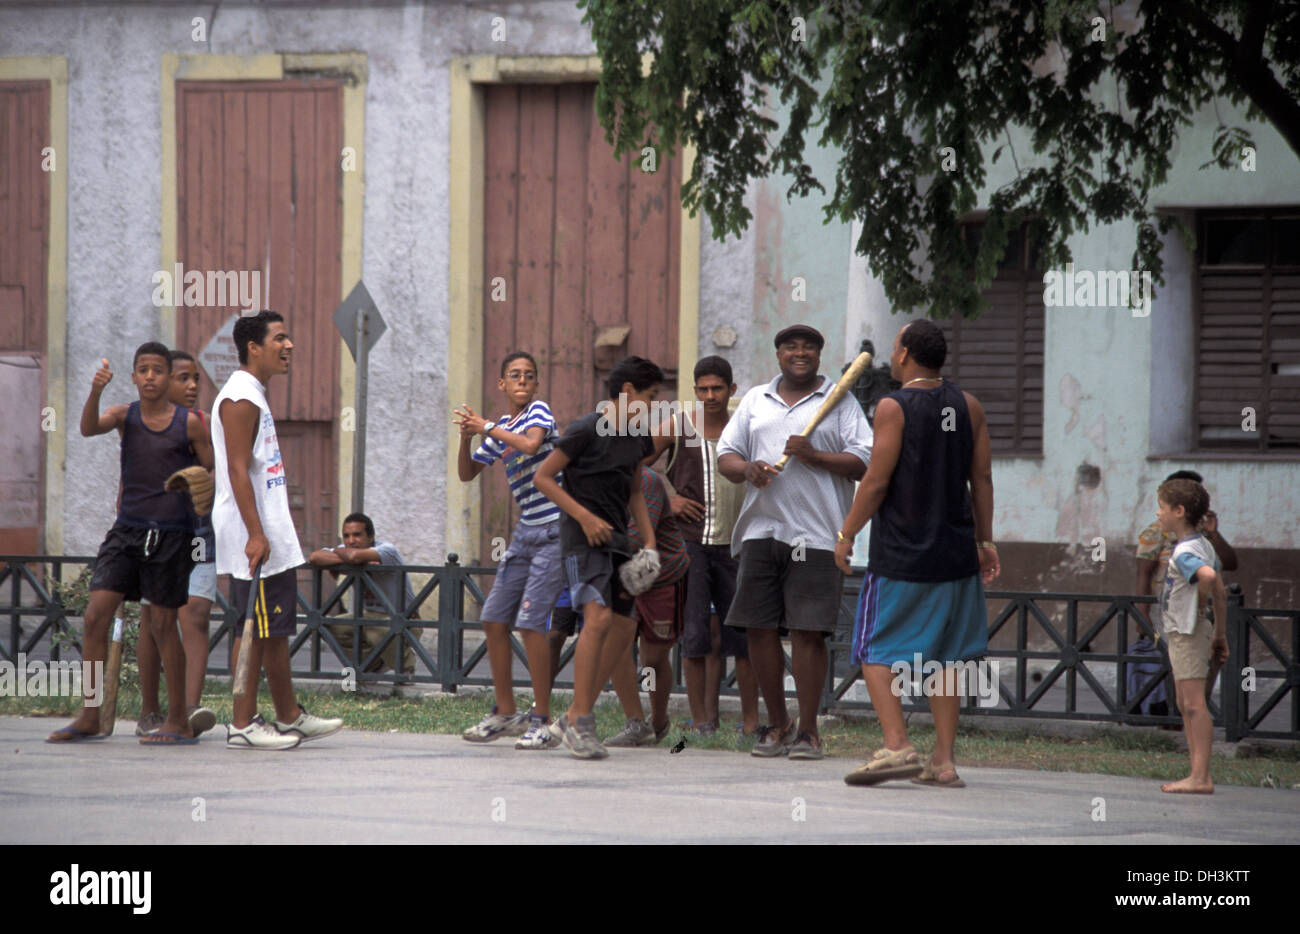 Cuban boys playing baseball in a Havana street, Cuba Stock Photo